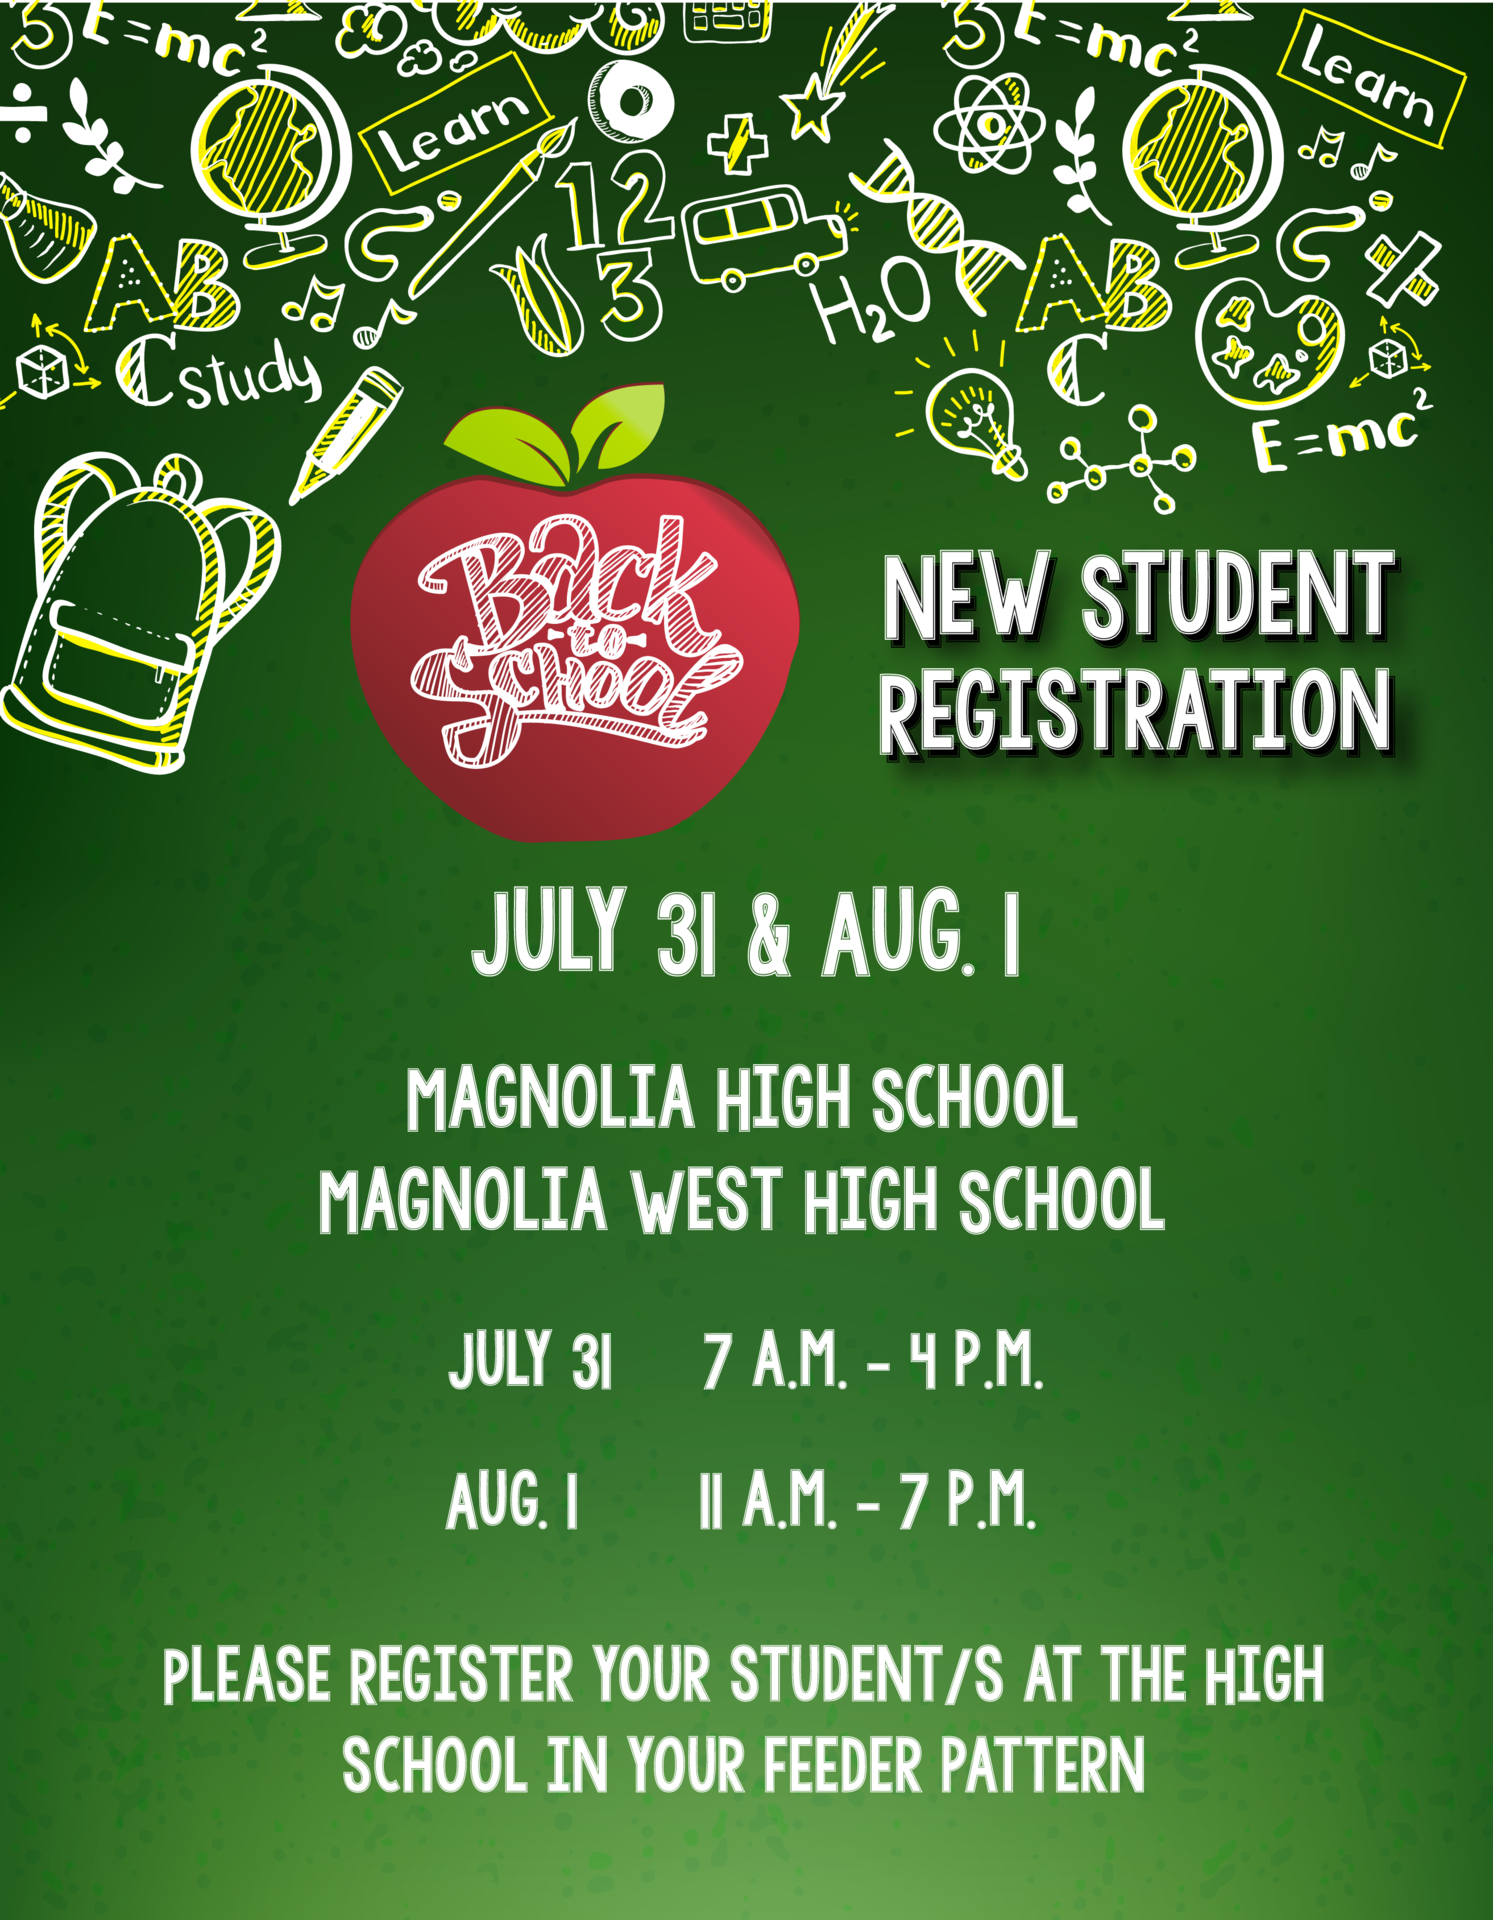 New Student Registration takes place on July 31 and Aug. 1